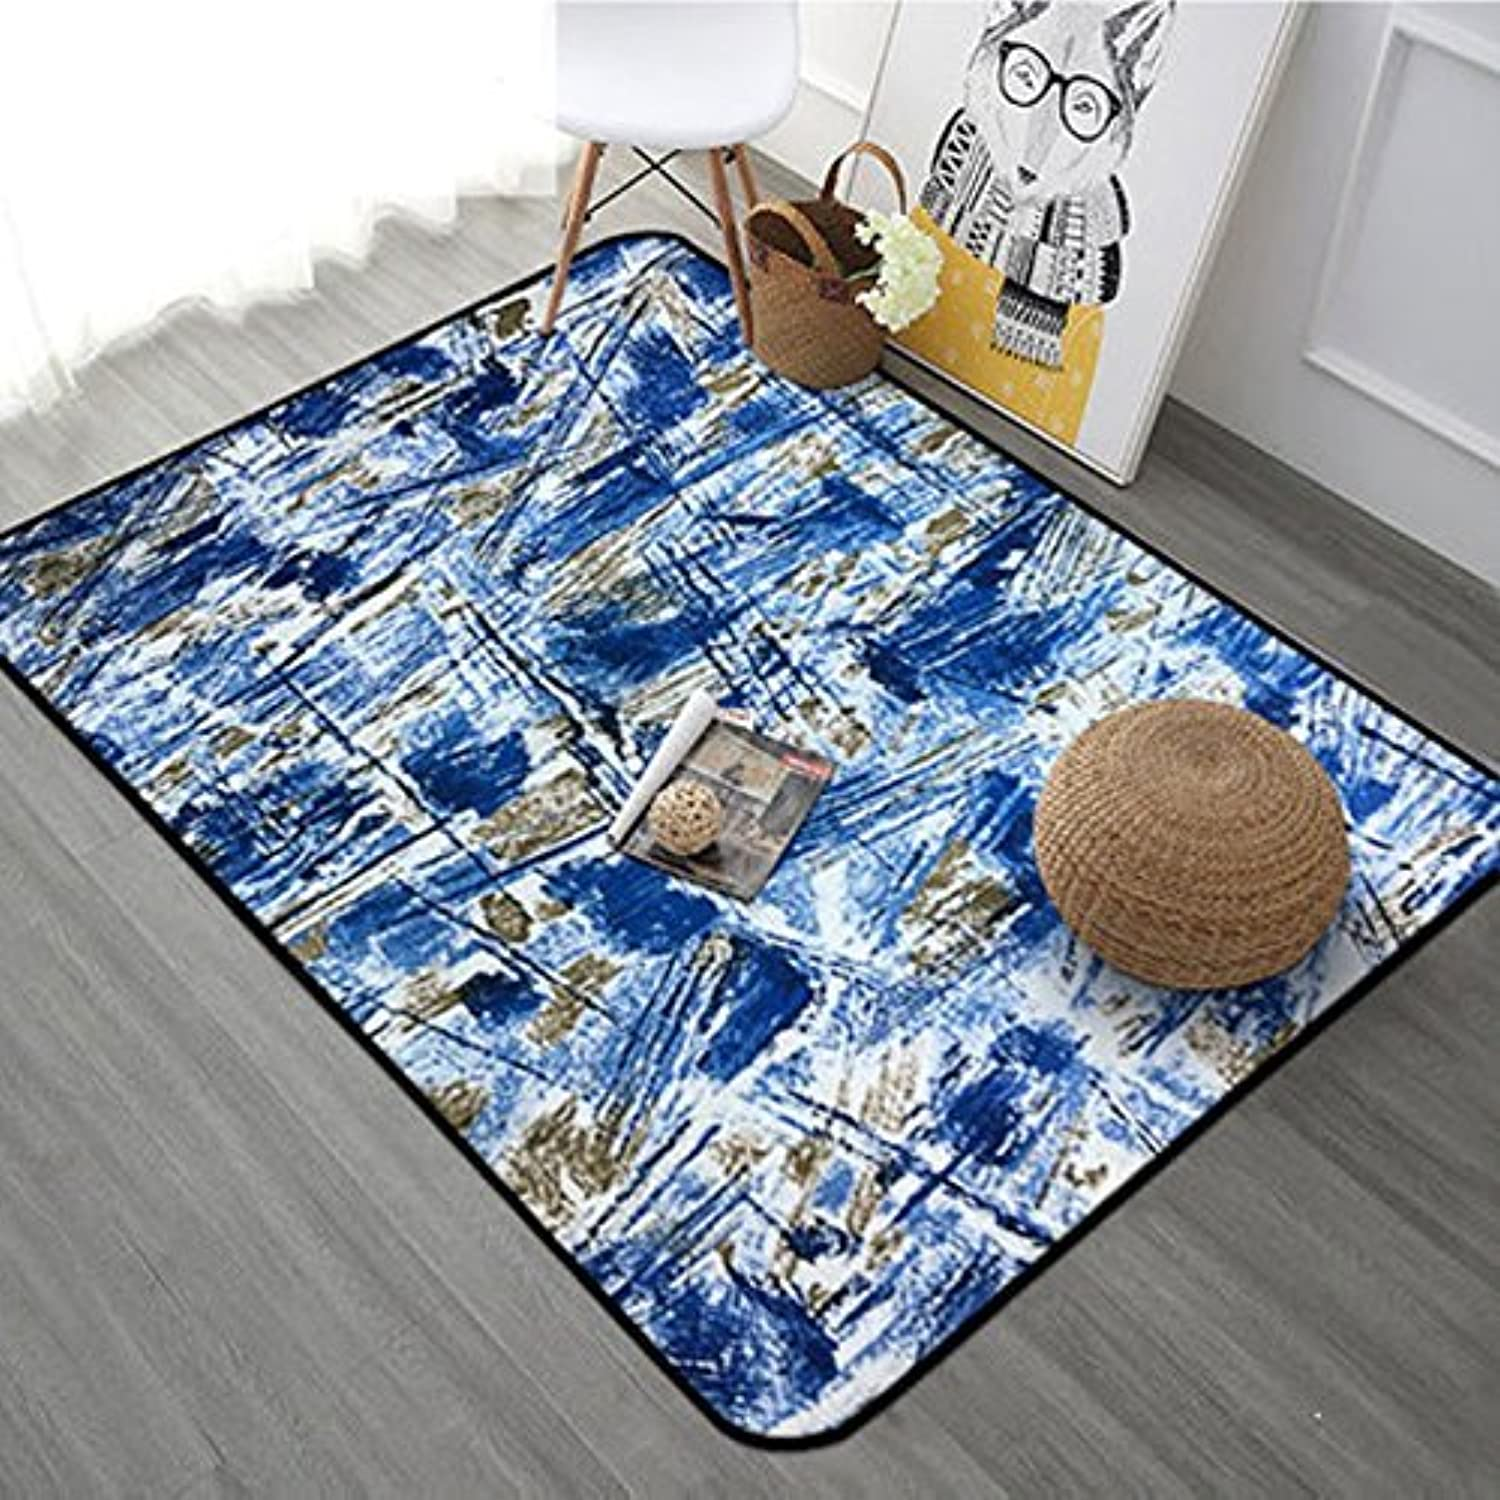 Modern Nordic Simple Geometric Carpet Low Table of Living Room Bedroom Home Shop Sofa Bed Cover Rectangular (color A, Size  70x140cm)